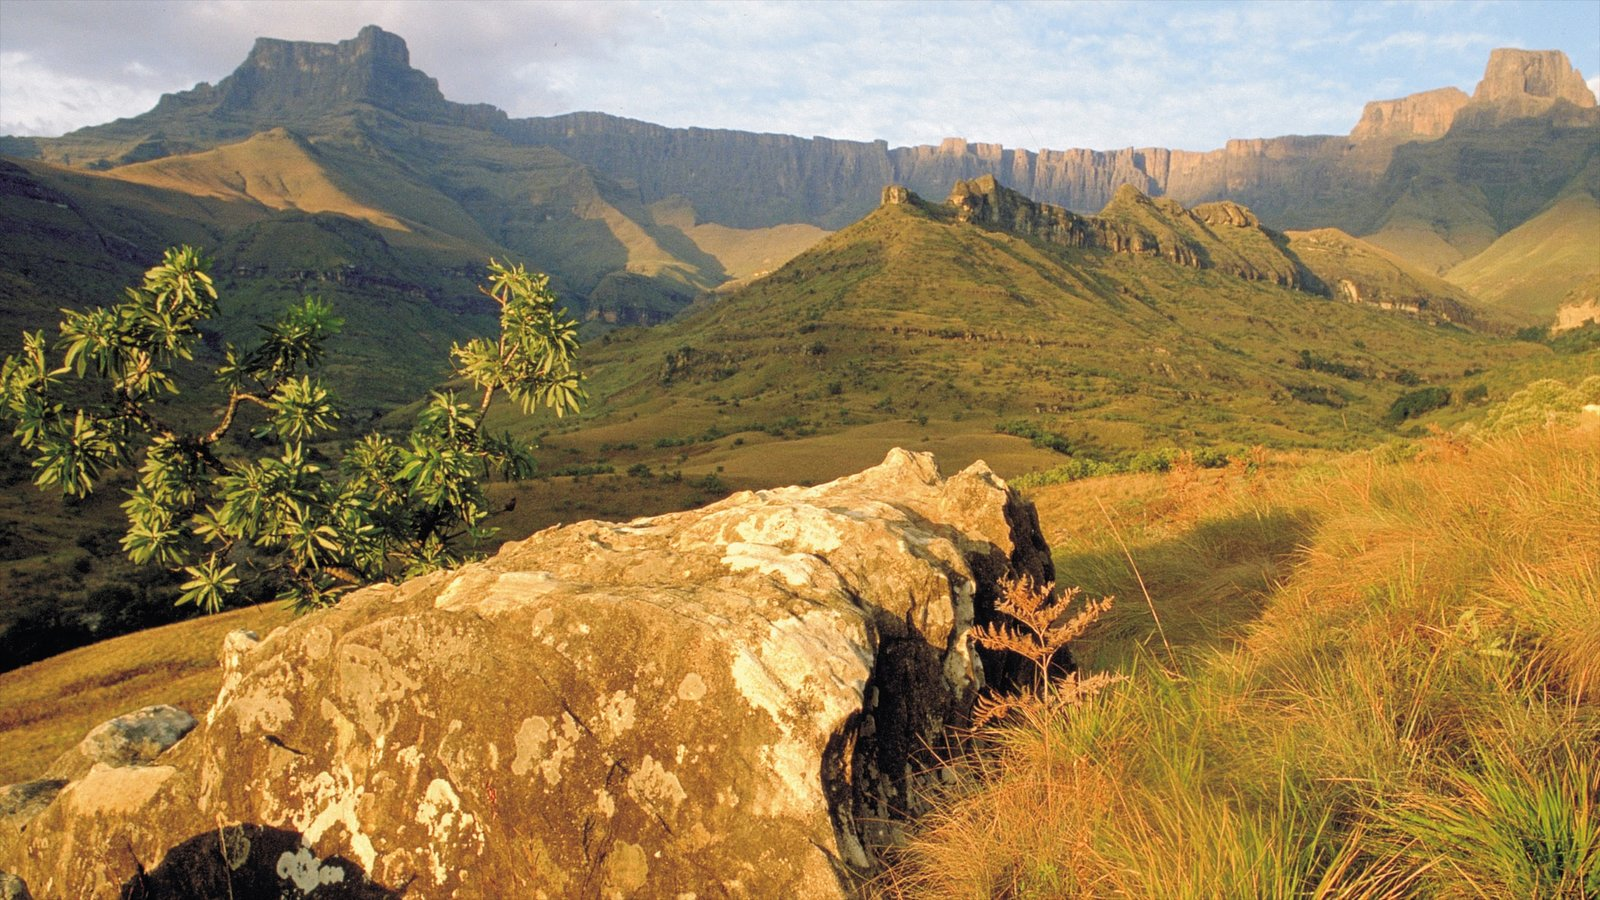 Drakensberg Mountains which includes landscape views, mountains and tranquil scenes